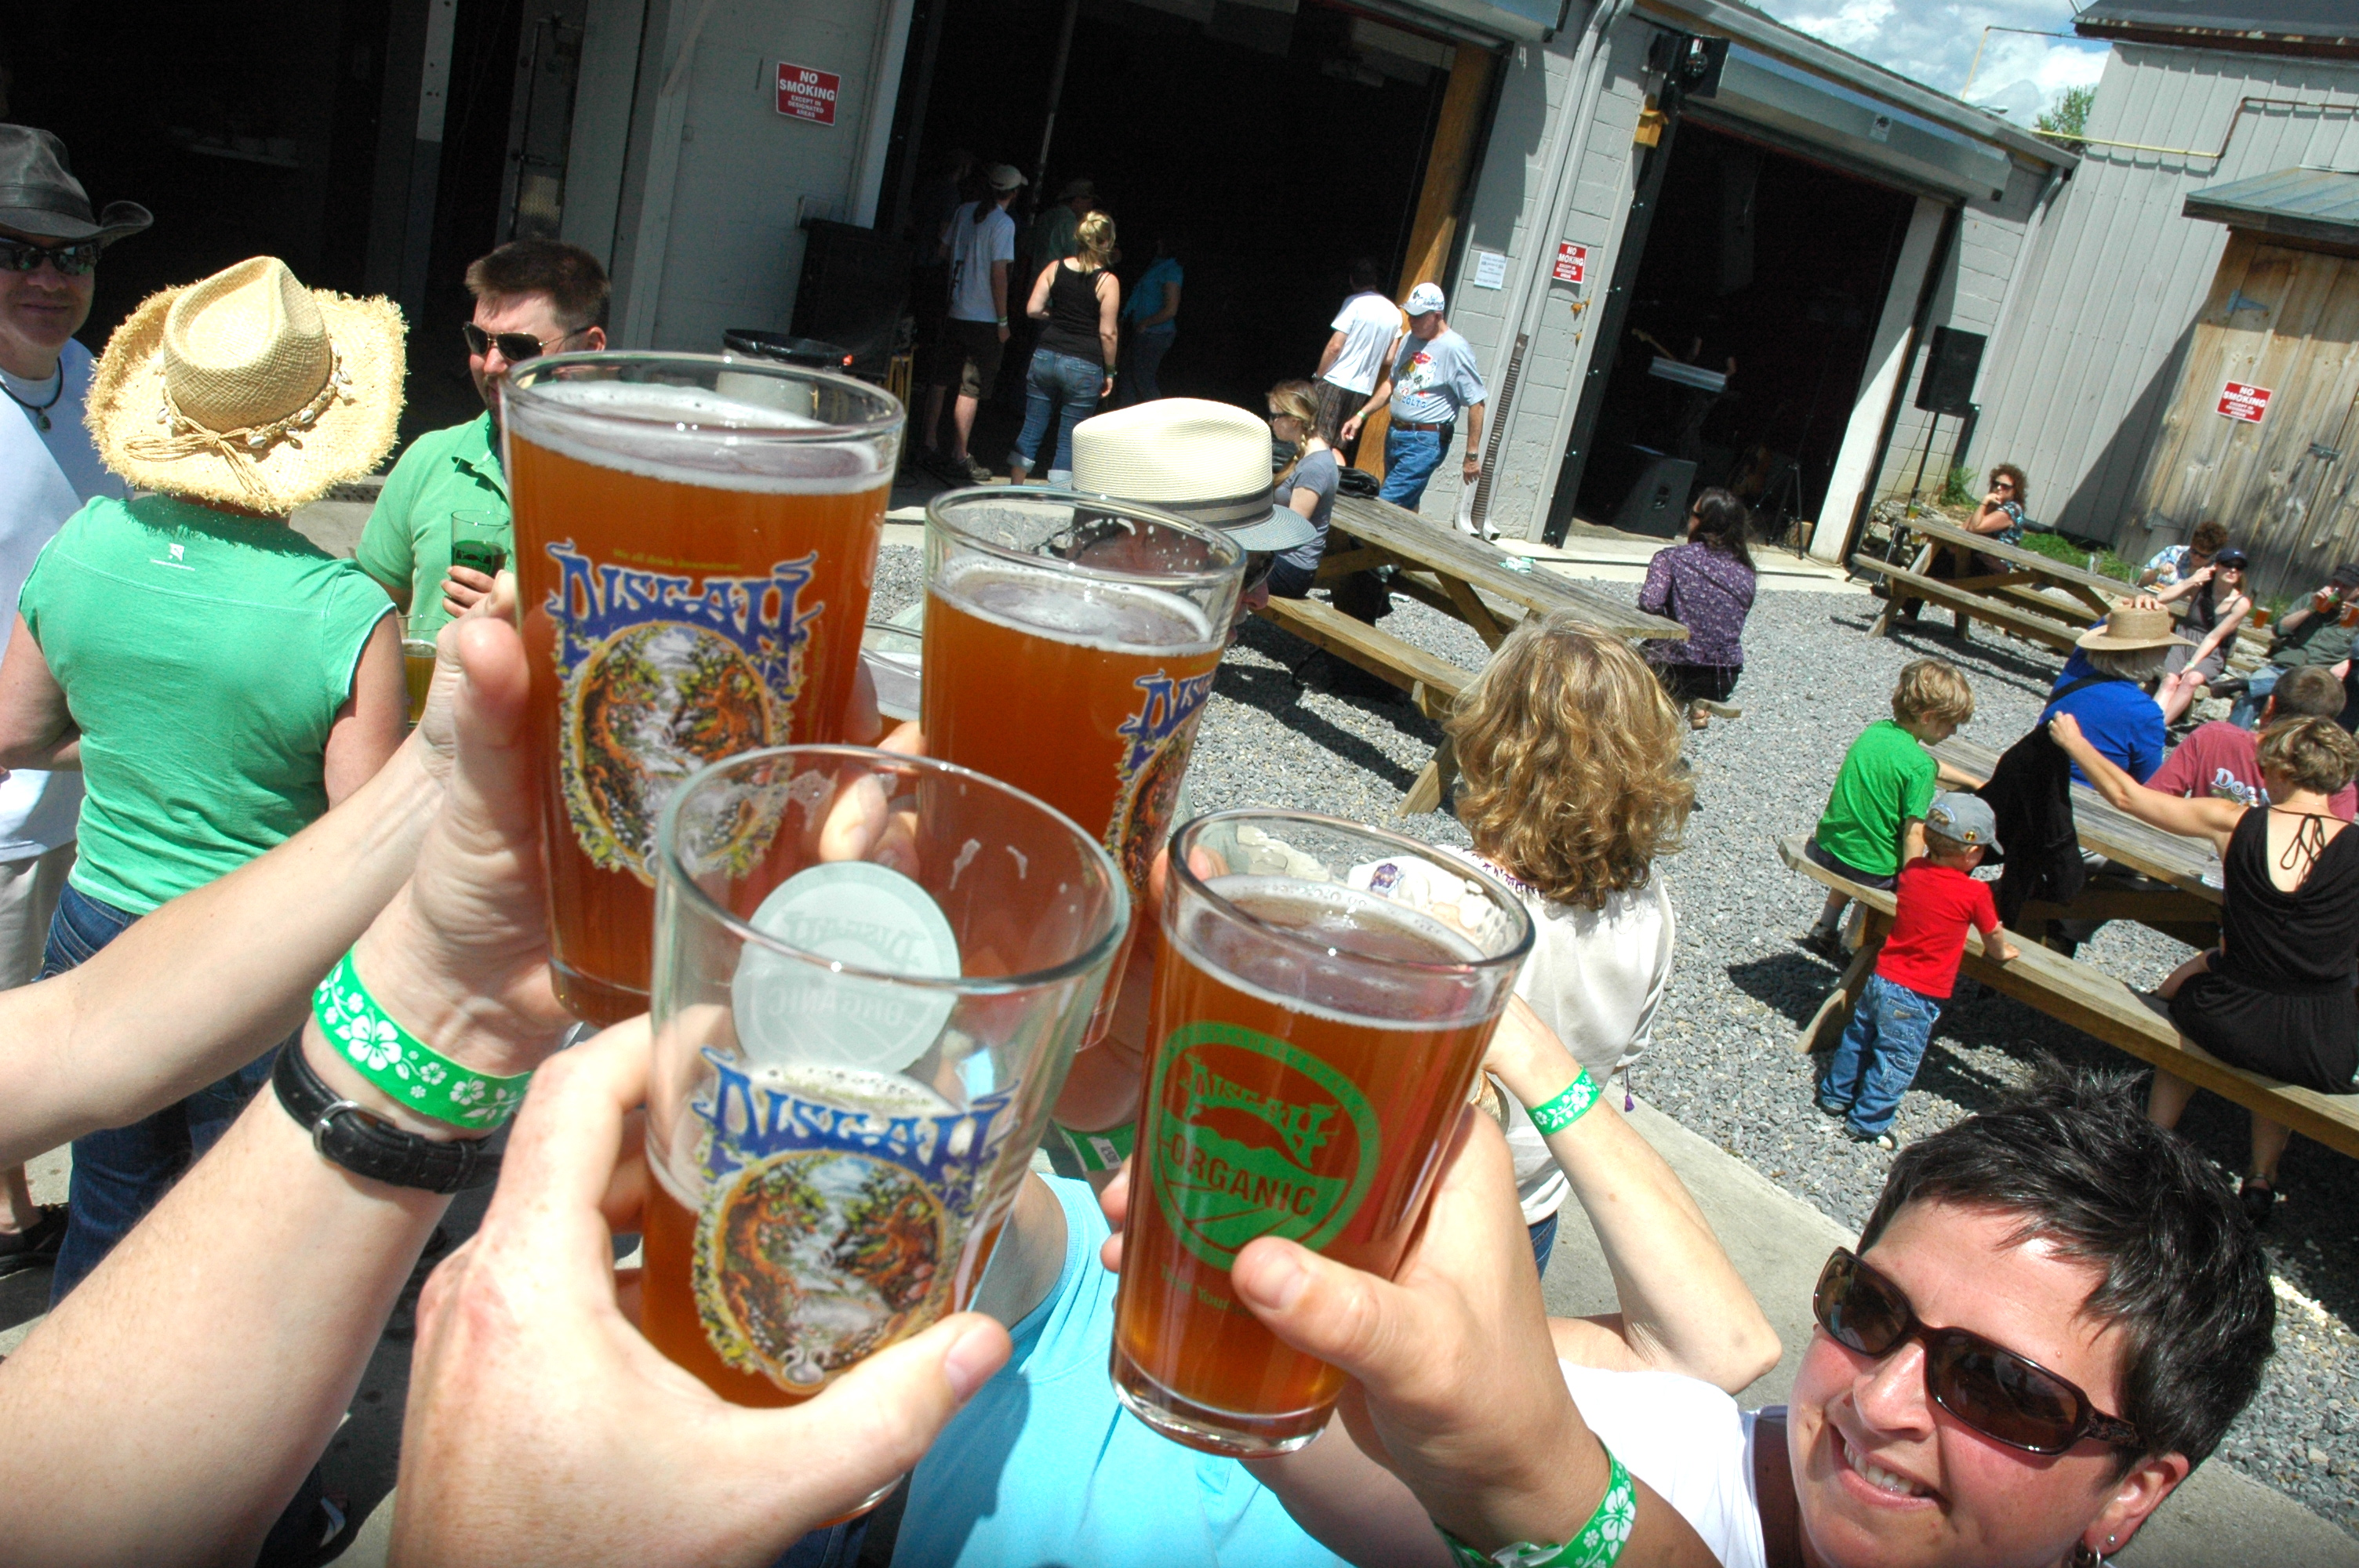 Cheers to Pisgah Brewing's 5th anniversary!